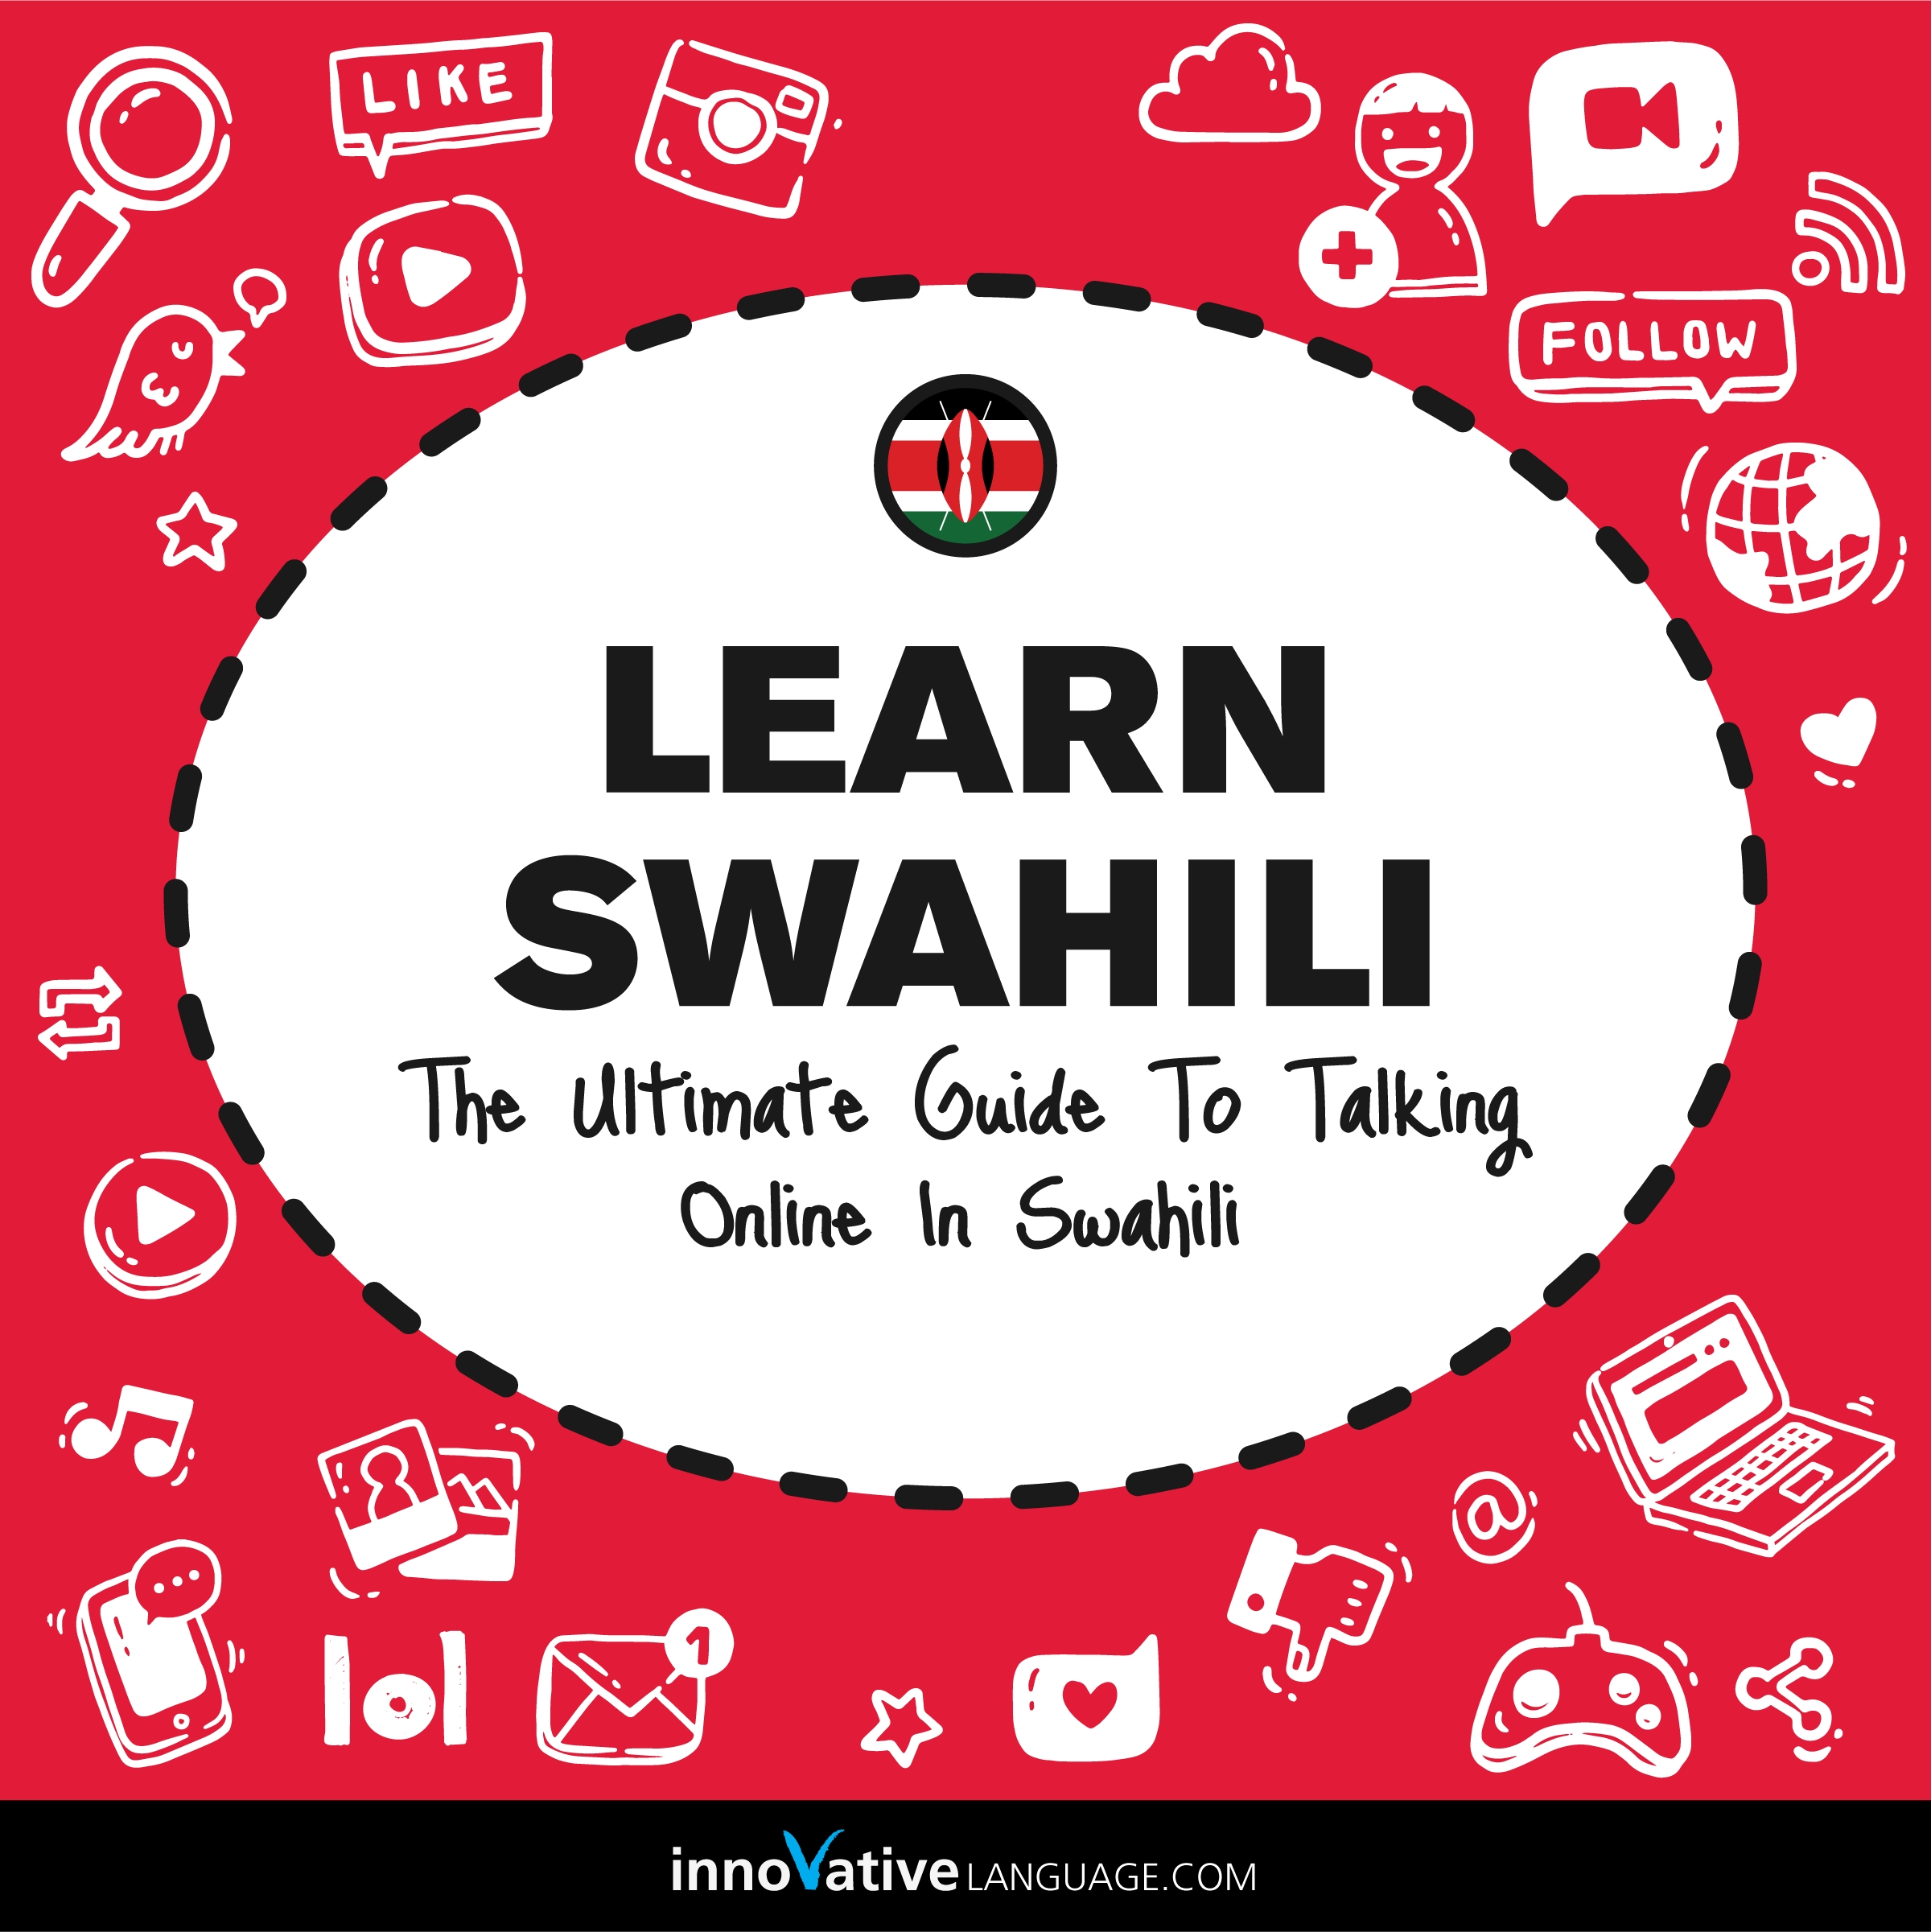 [Audiobook] Learn Swahili: The Ultimate Guide to Talking Online in Swahili